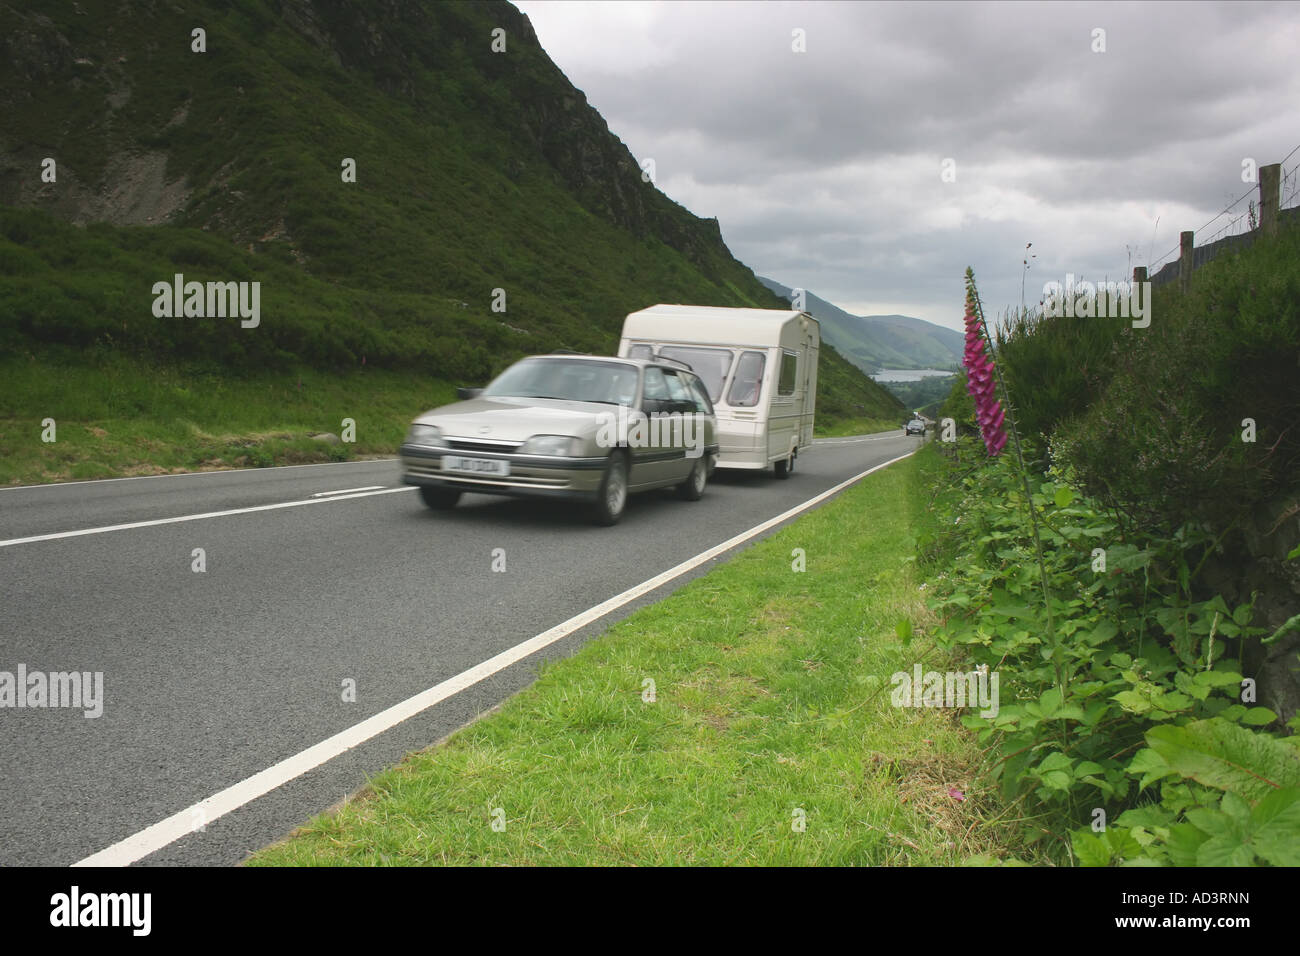 car traveling mountain road stockfotos car traveling mountain road bilder seite 2 alamy. Black Bedroom Furniture Sets. Home Design Ideas